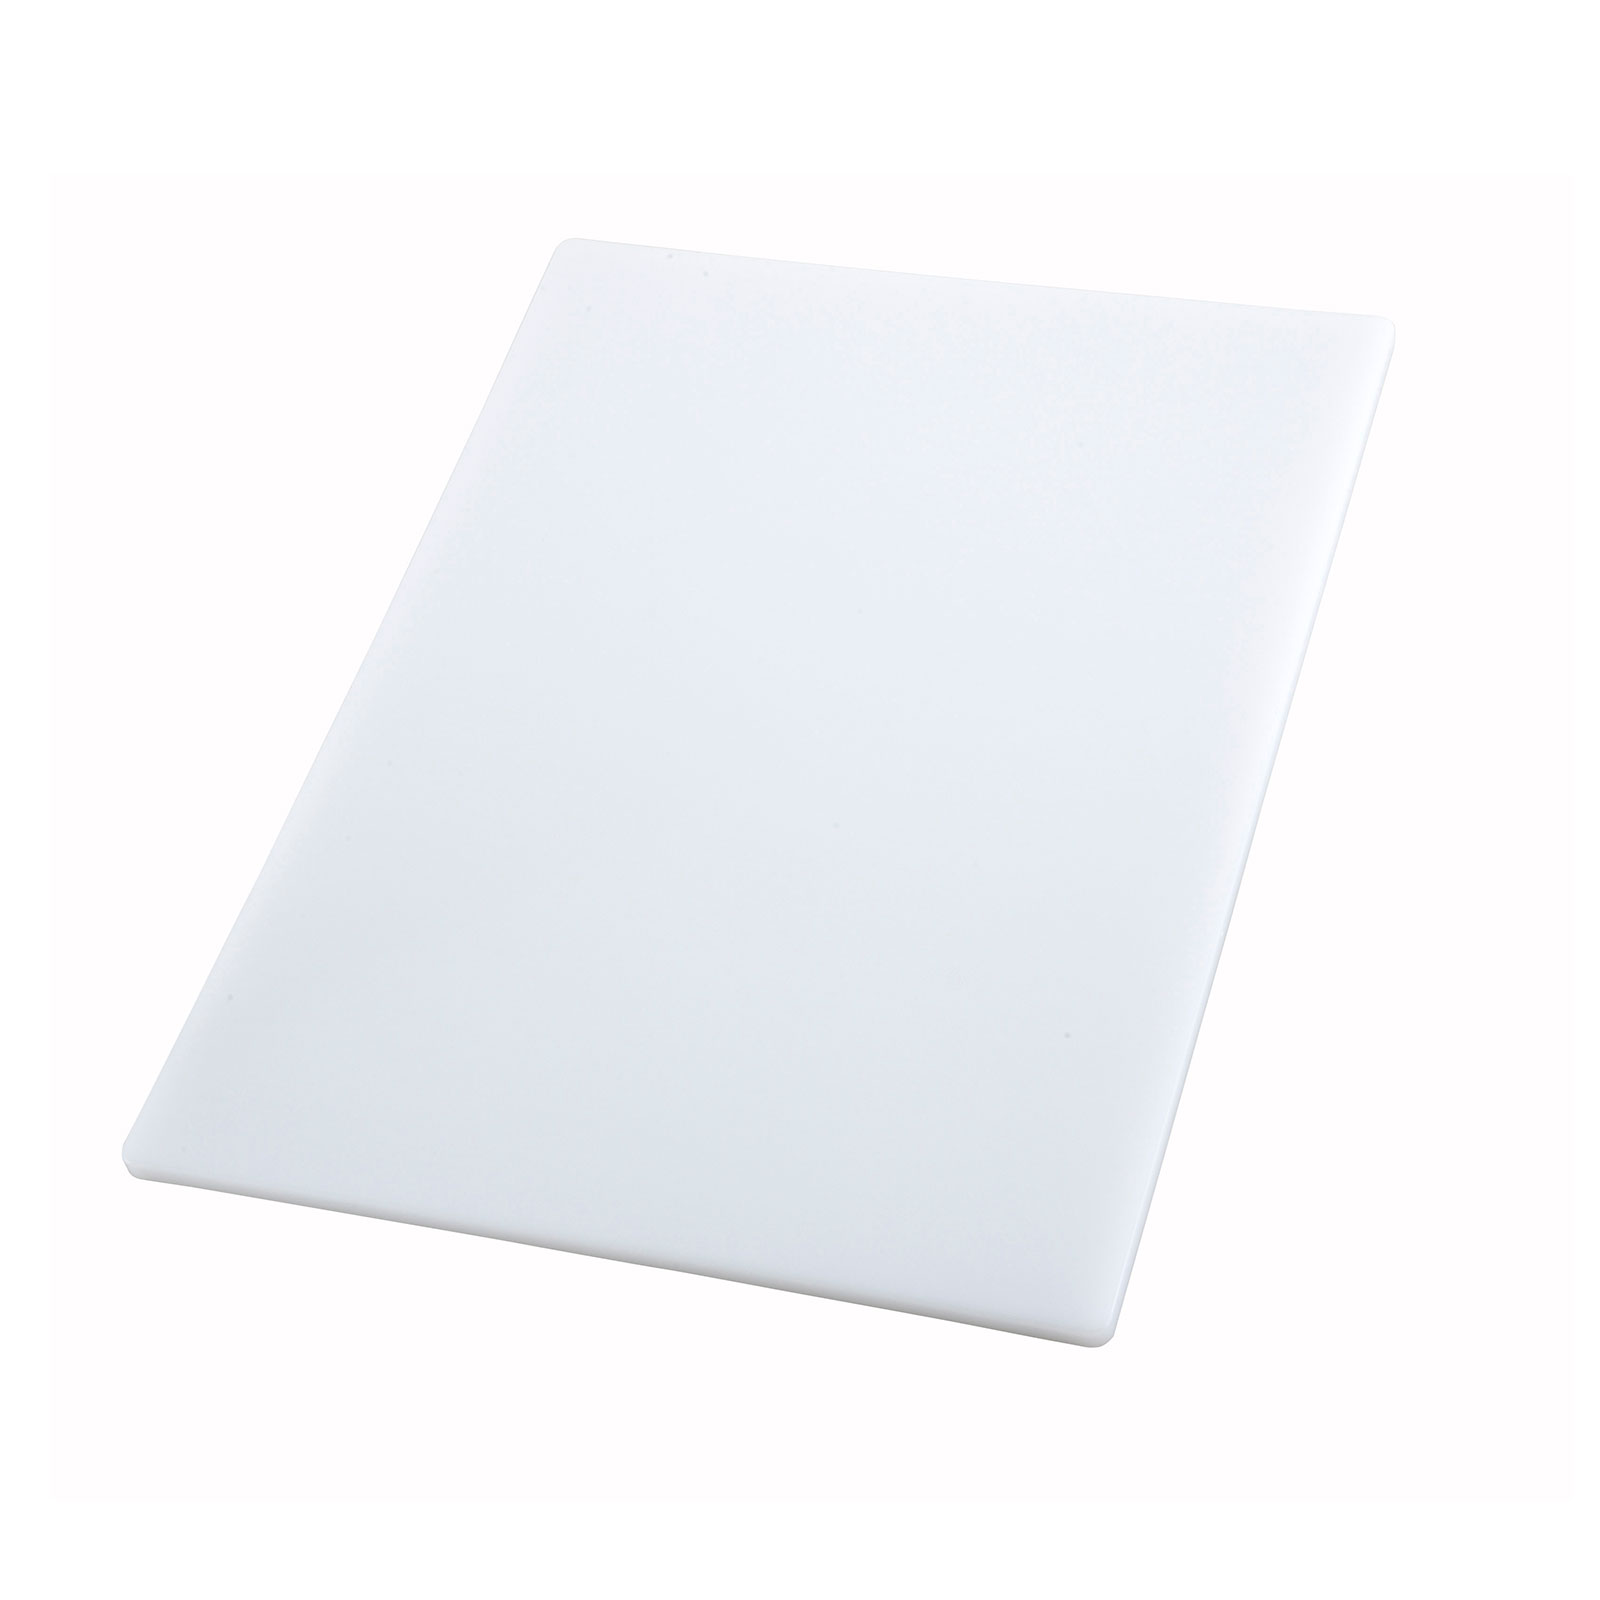 1700-3 Winco CBWT-1520 cutting board, plastic